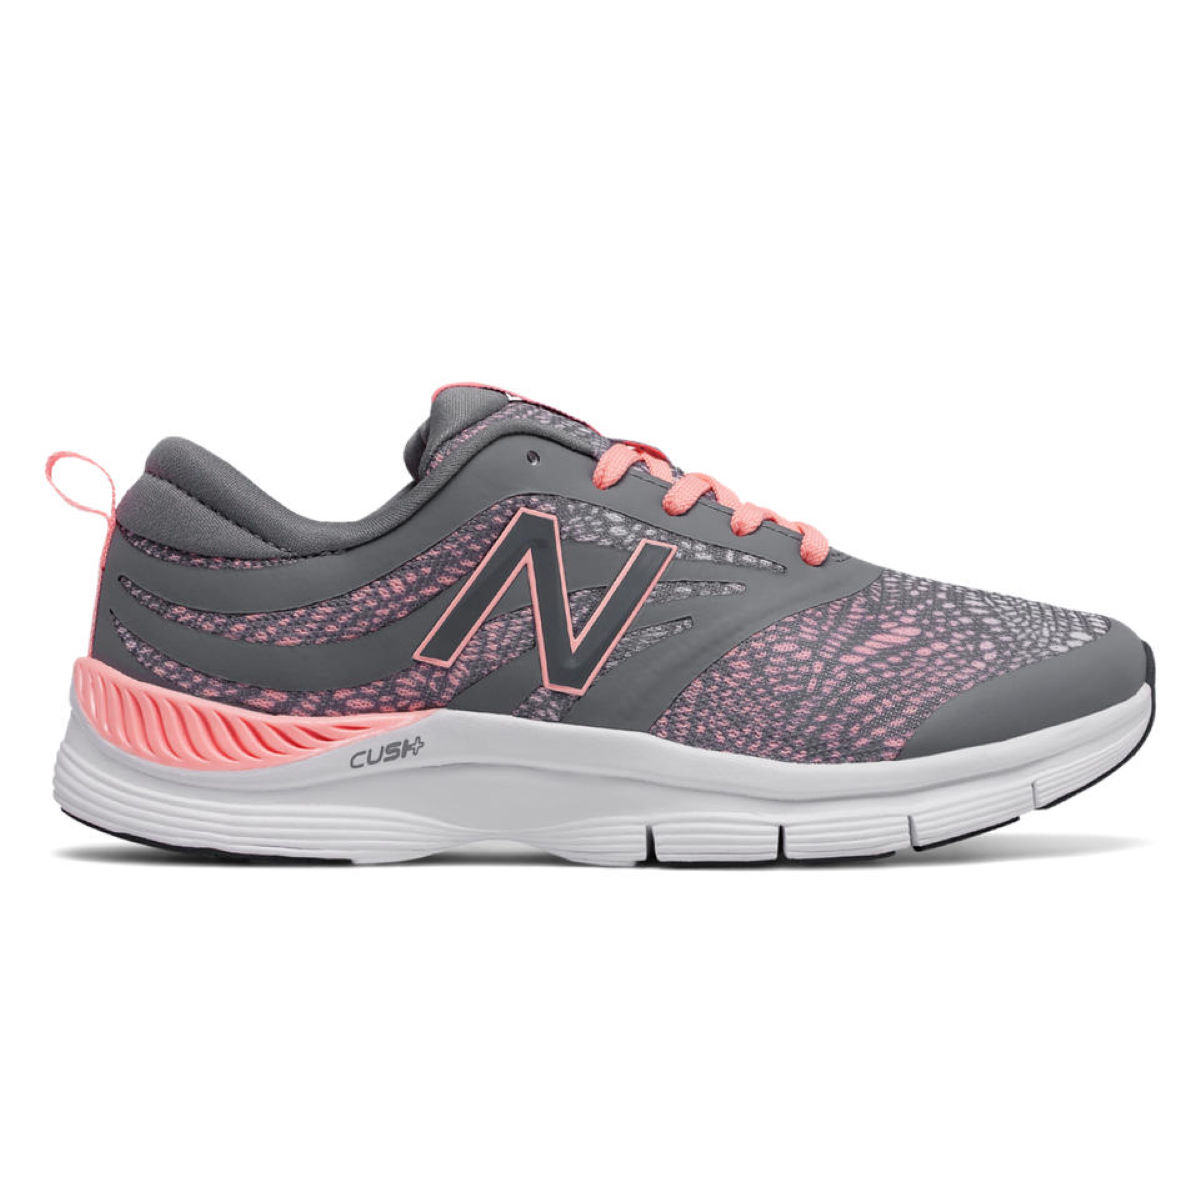 Chaussures Femme New Balance 713 - UK 8.5 Grey/Pink